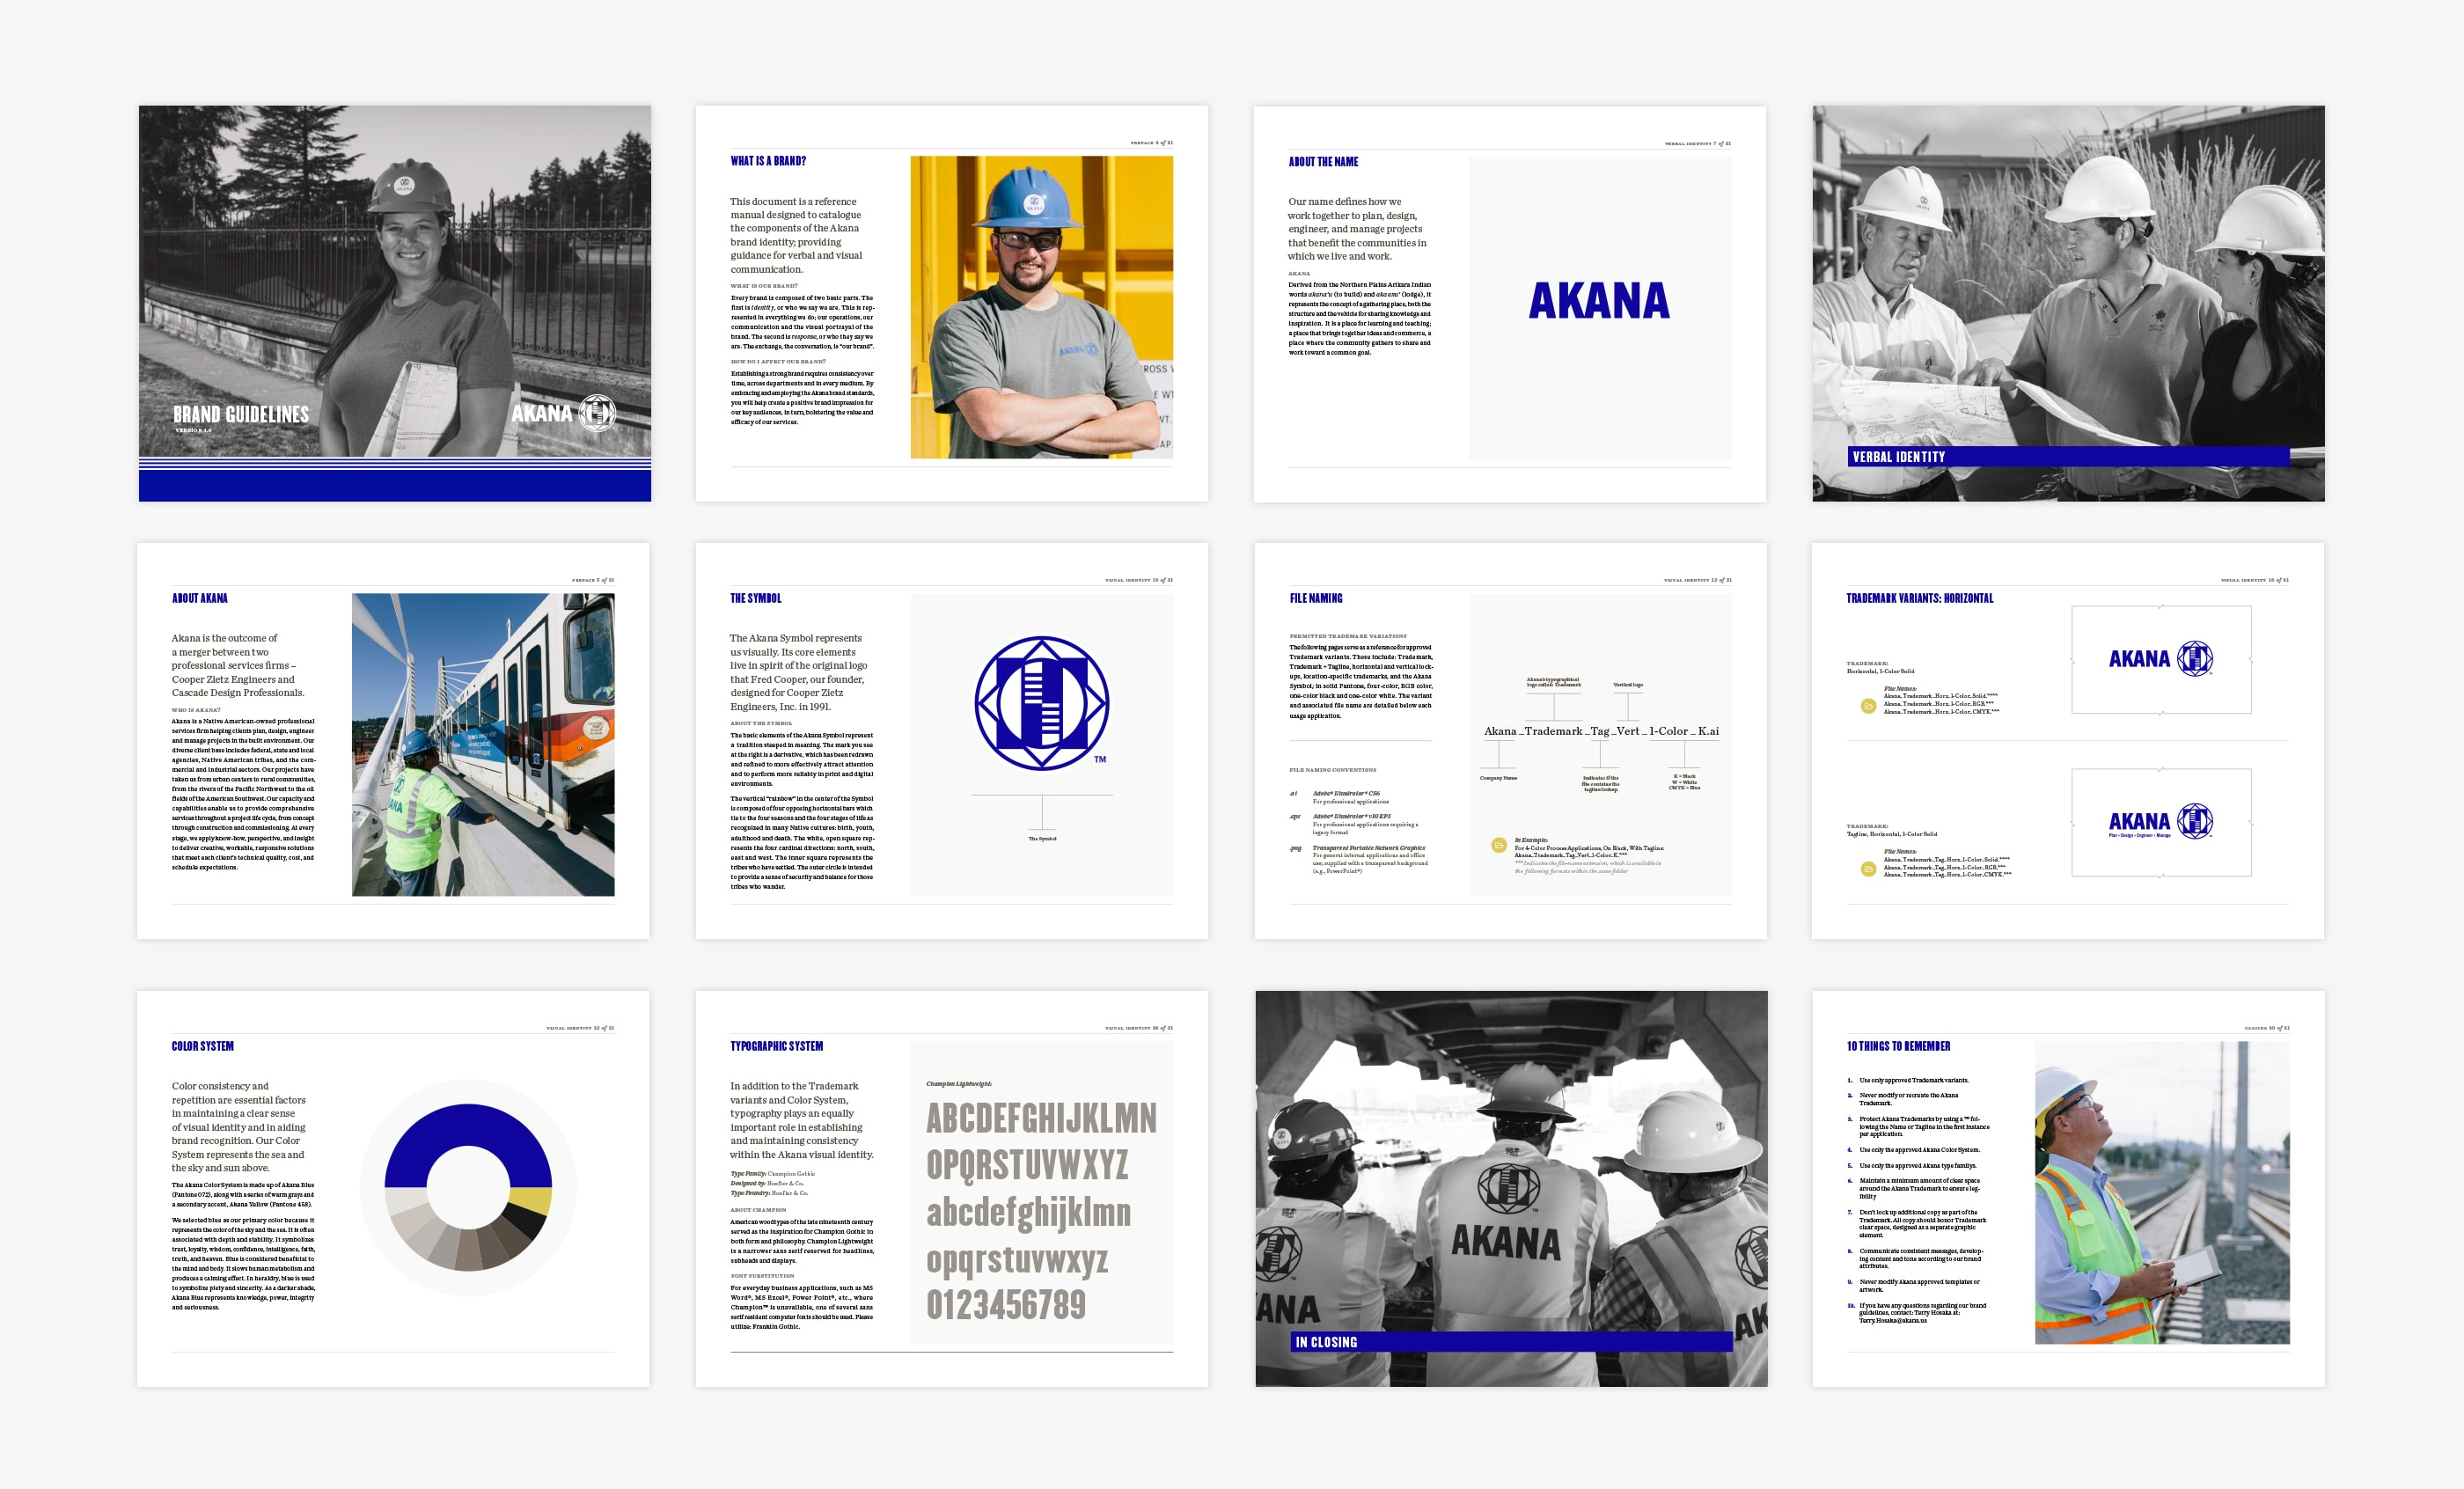 Akana Brand Guidelines Excerpts